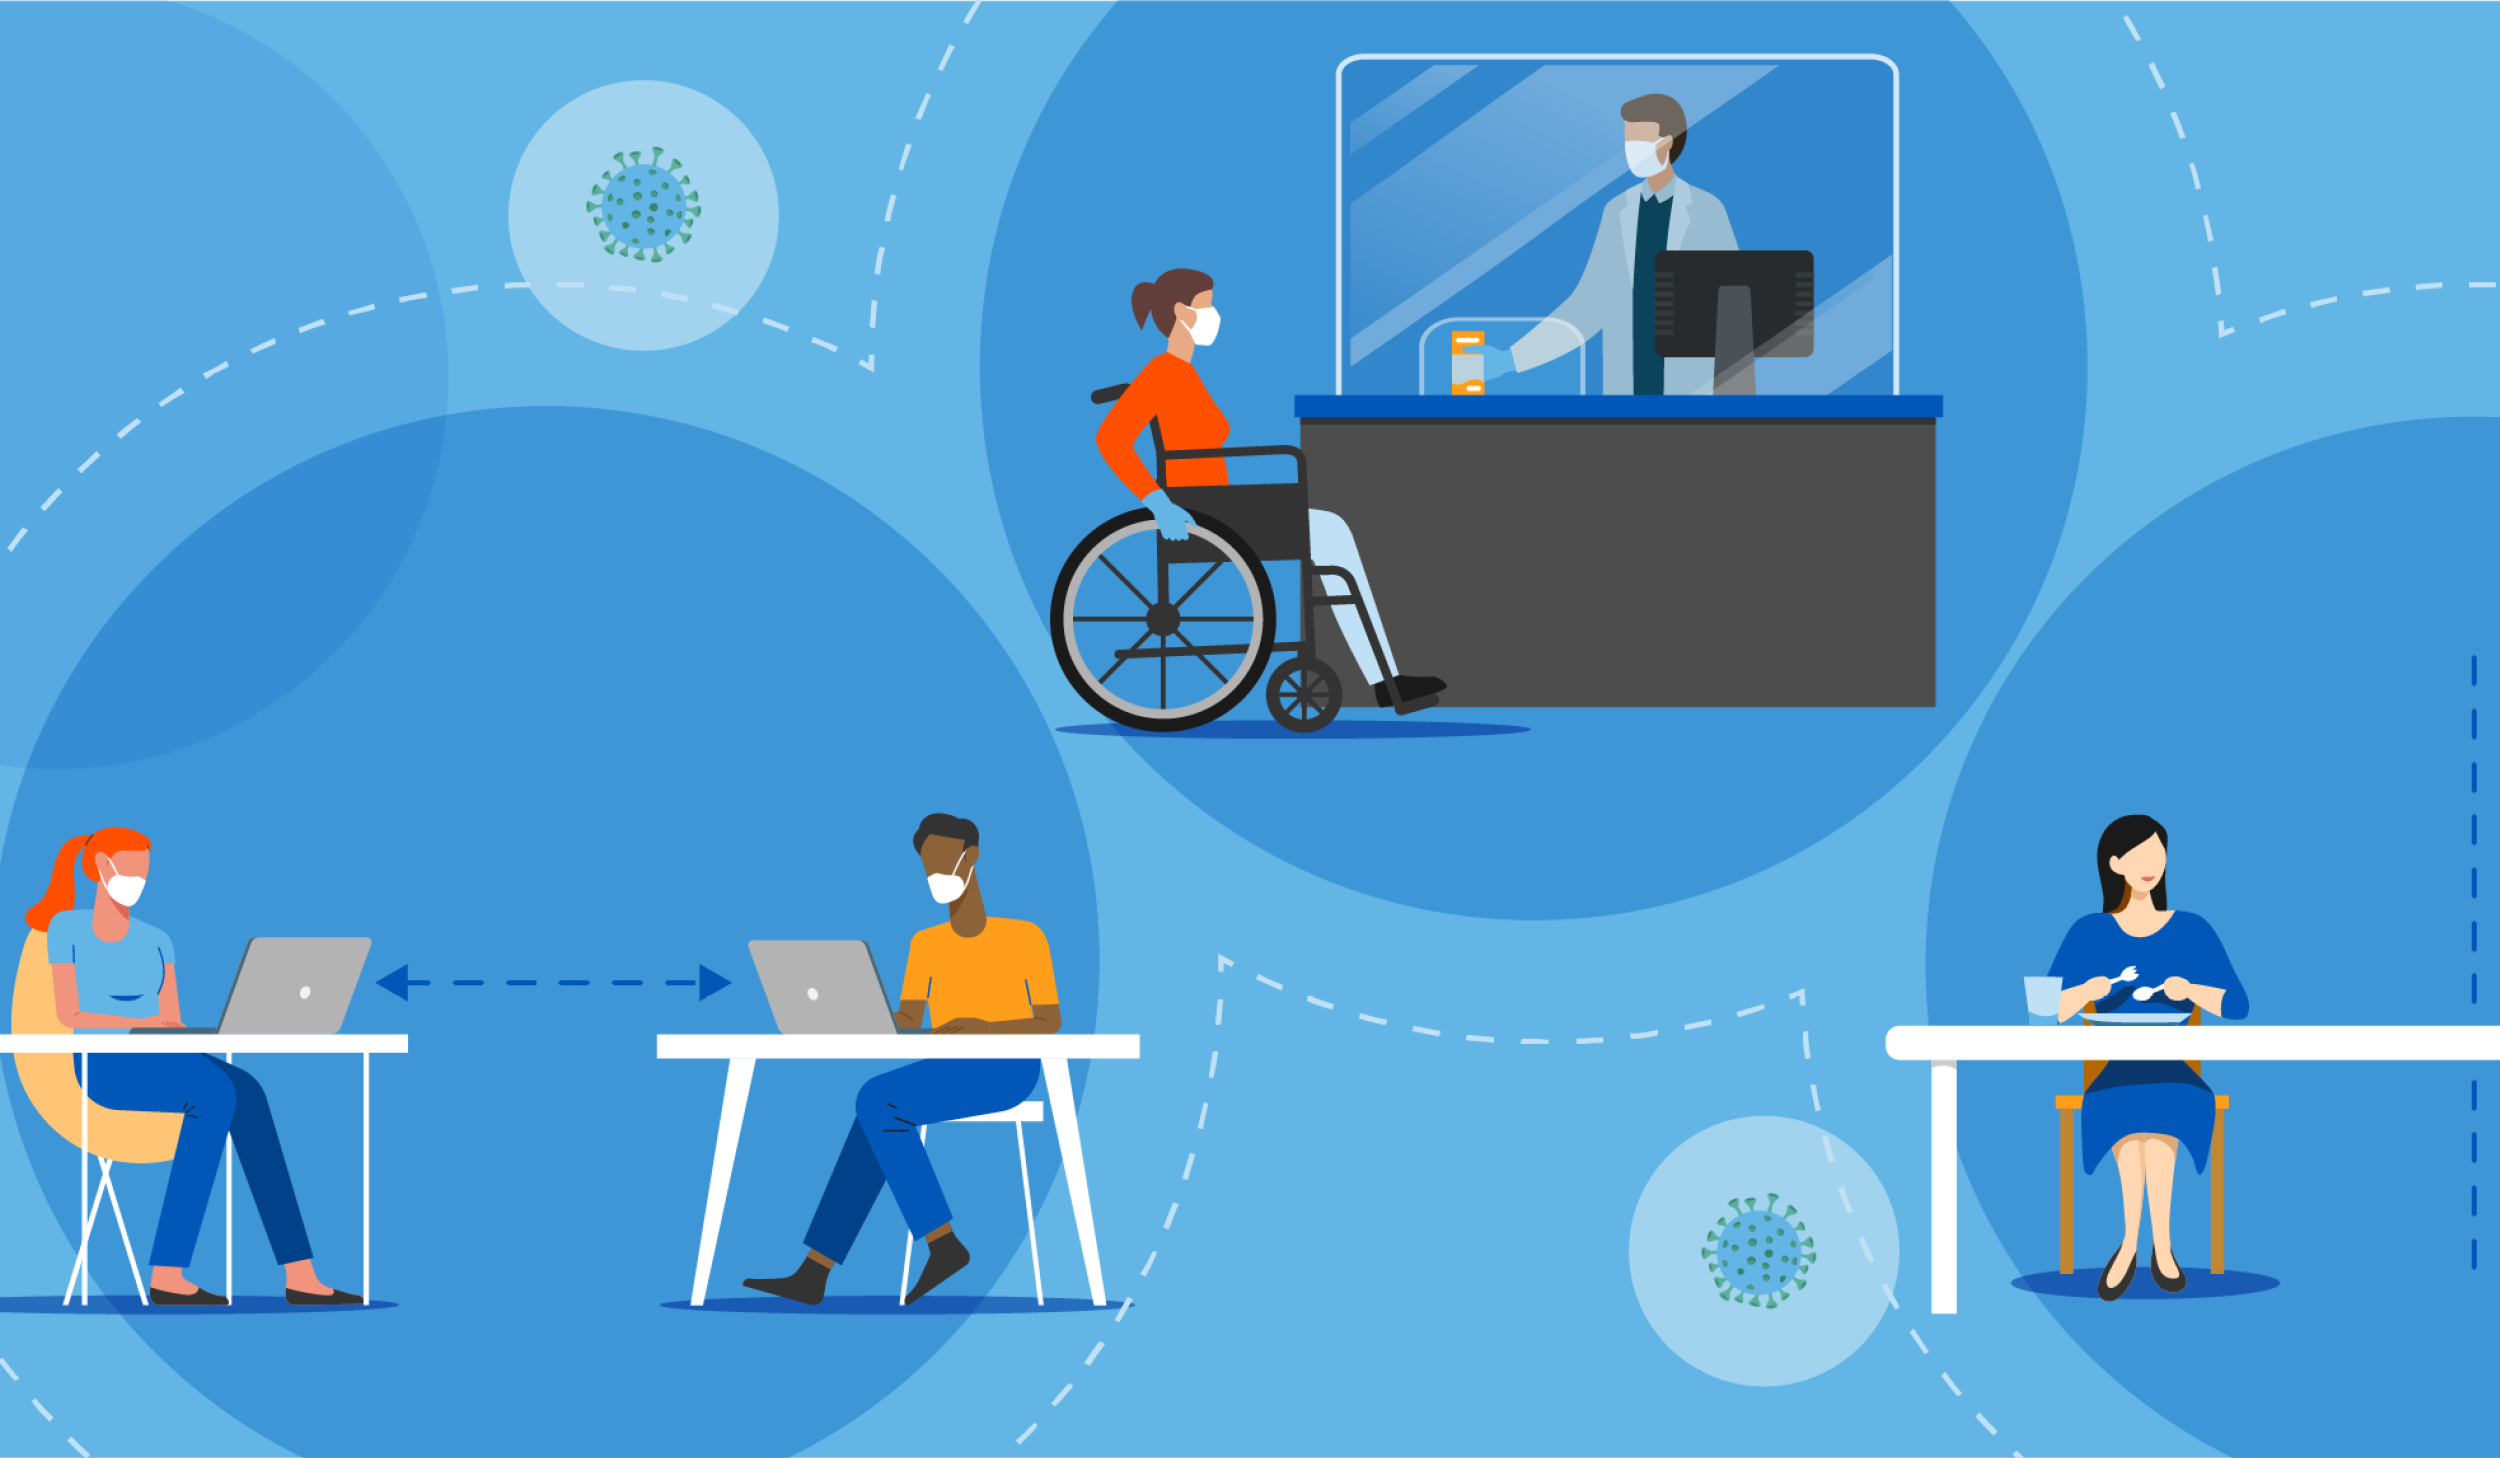 illustration showing person in a wheelchair wearing a mask picking something up from a pharmacist and women wearing masks working off laptops with measurements indicating they are keeping distance